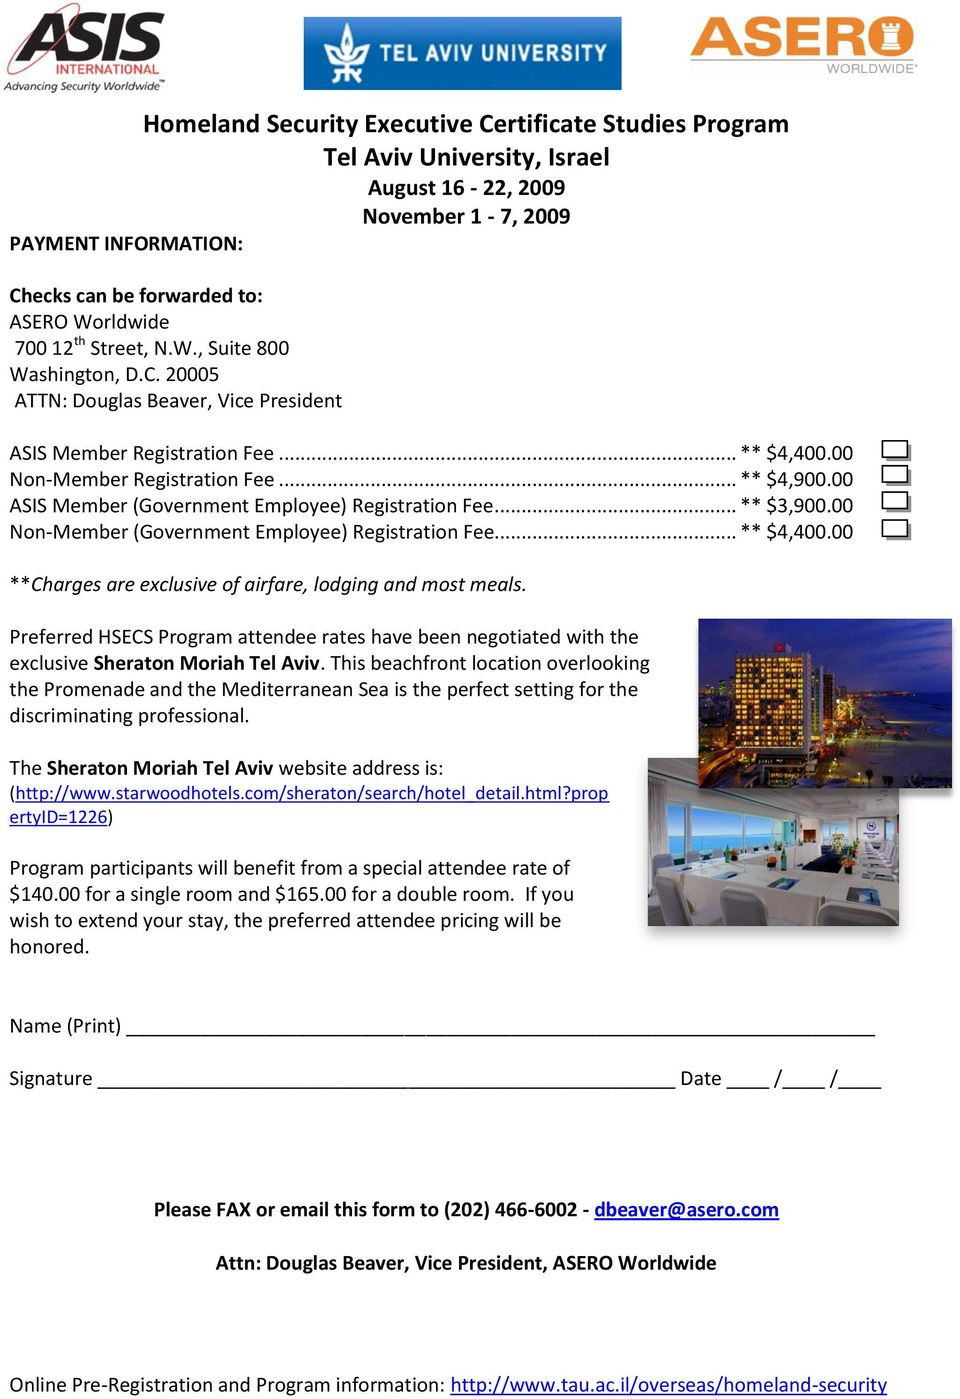 00 ASIS Member (Government Employee) Registration Fee... ** $3,900.00 Non-Member (Government Employee) Registration Fee... ** $4,400.00 **Charges are exclusive of airfare, lodging and most meals.